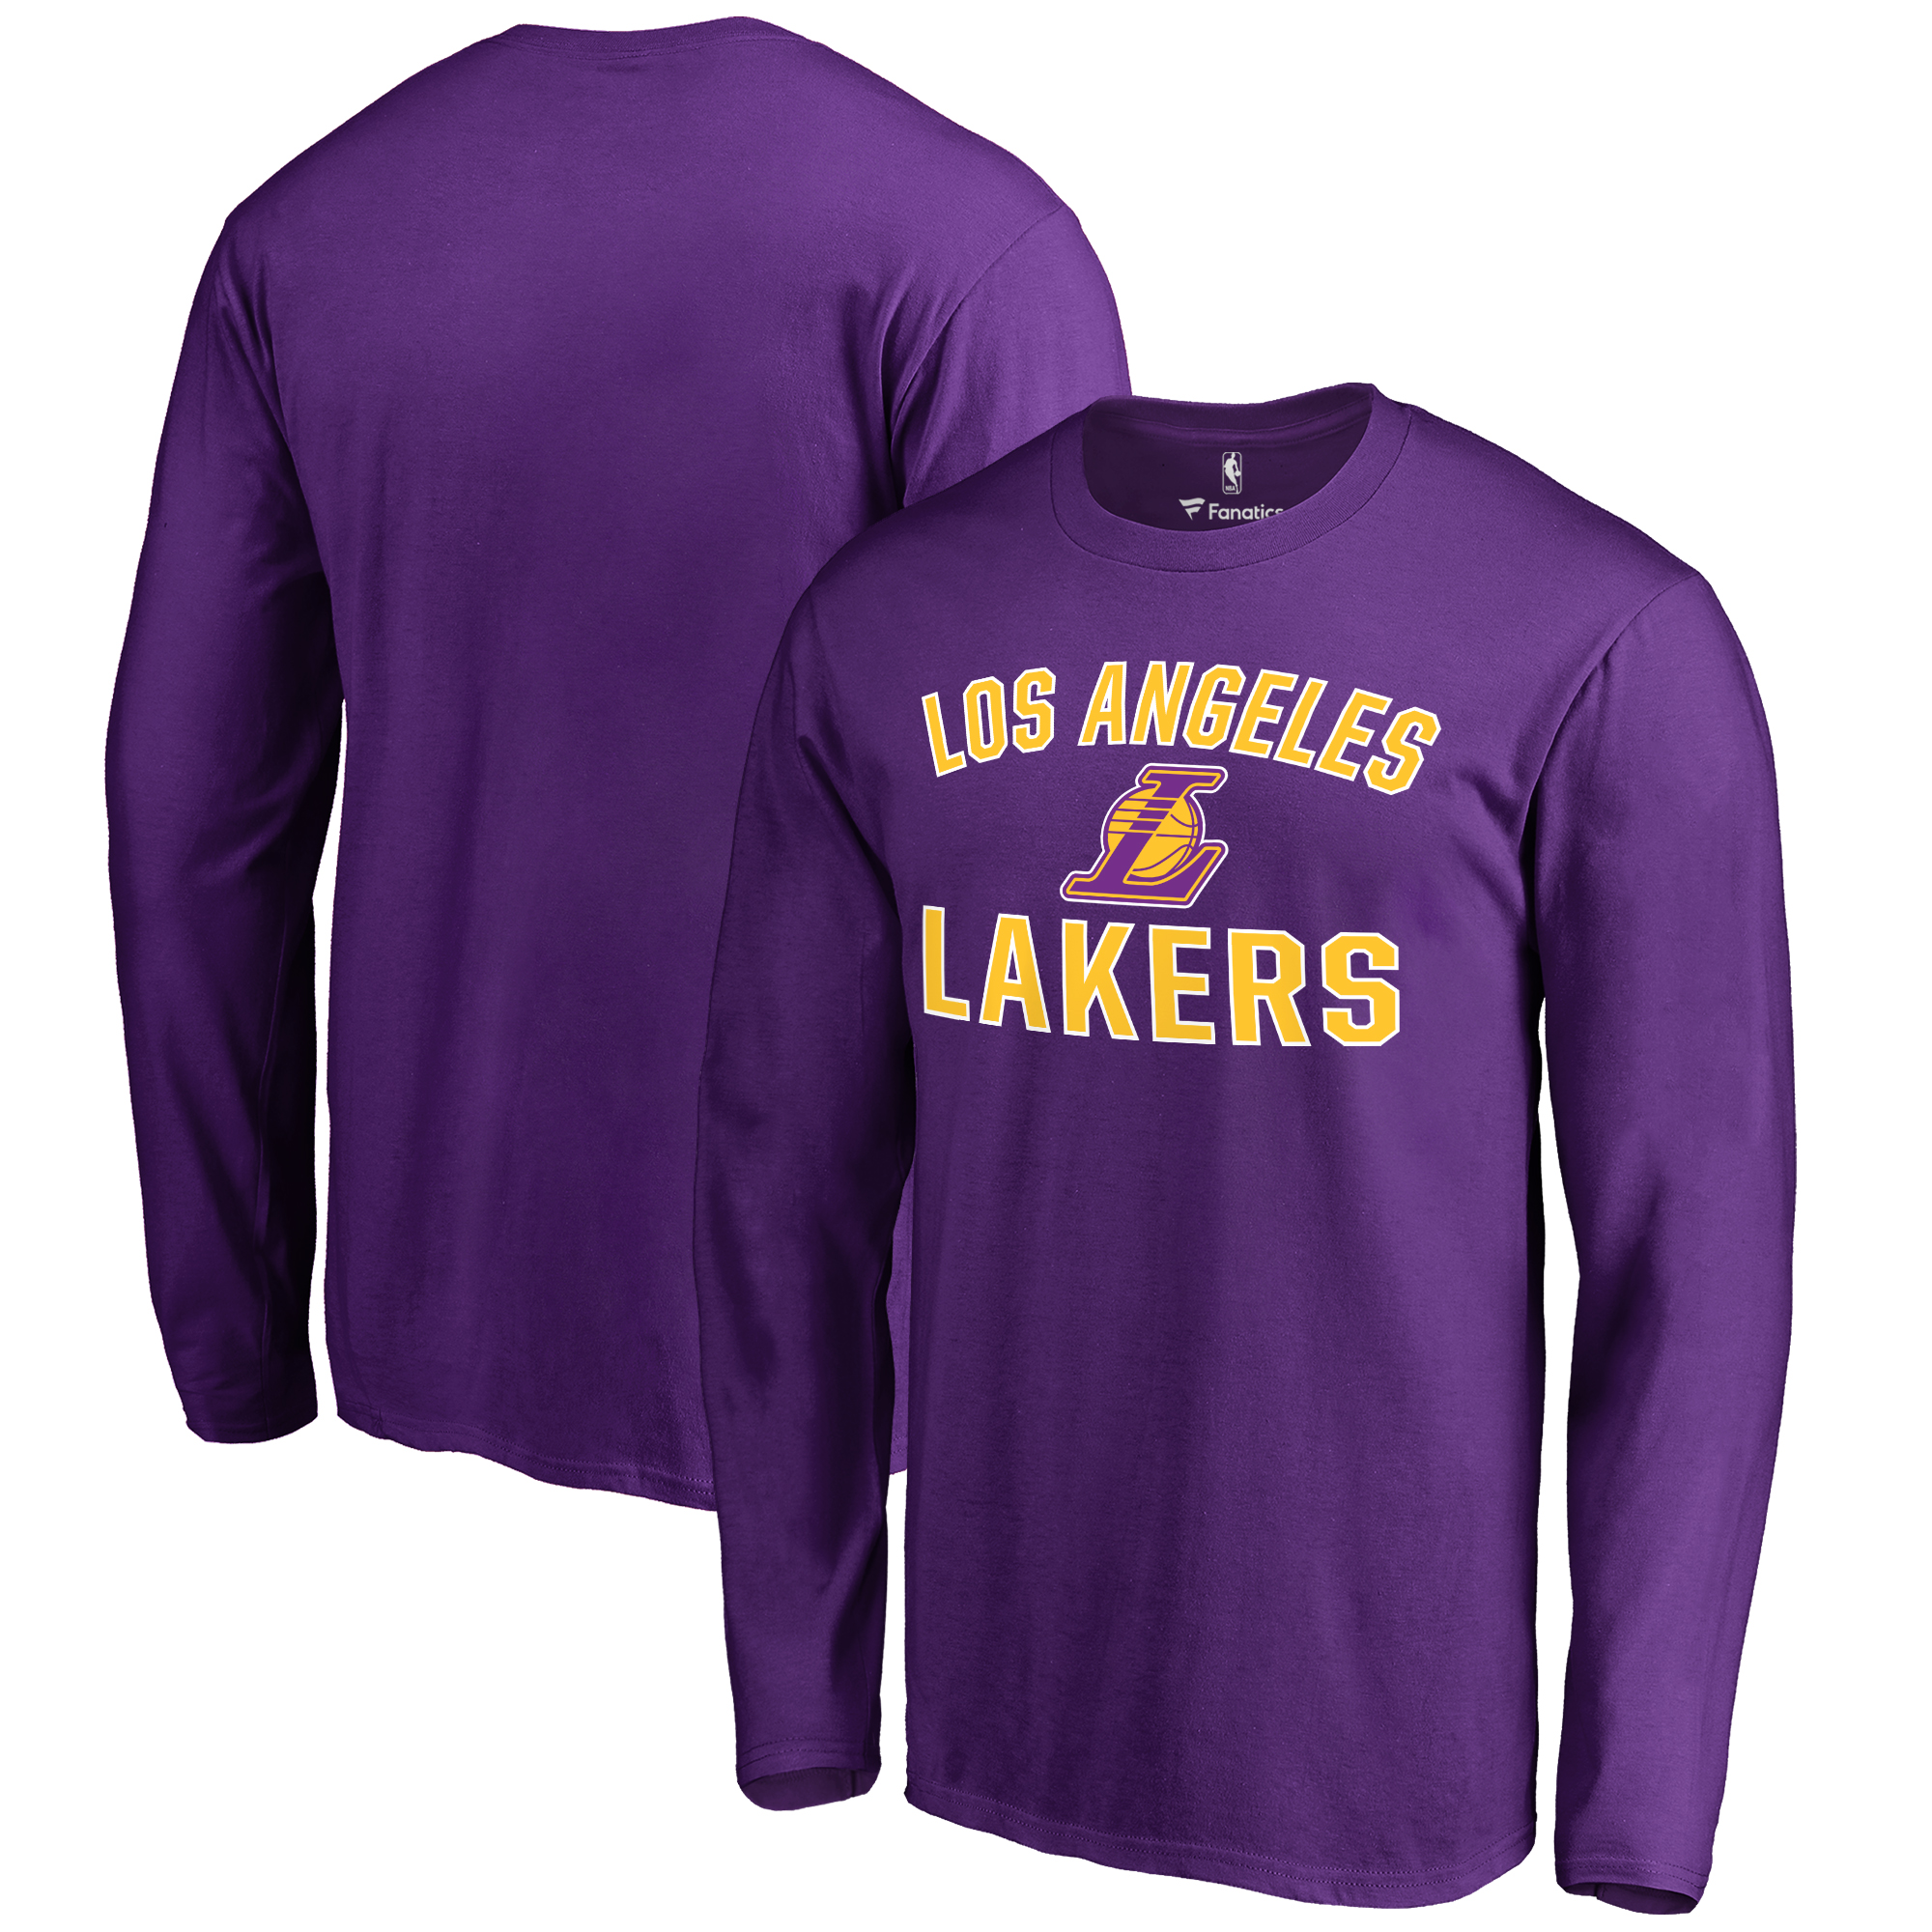 Los Angeles Lakers Victory Arch Long Sleeve T-Shirt - Purple